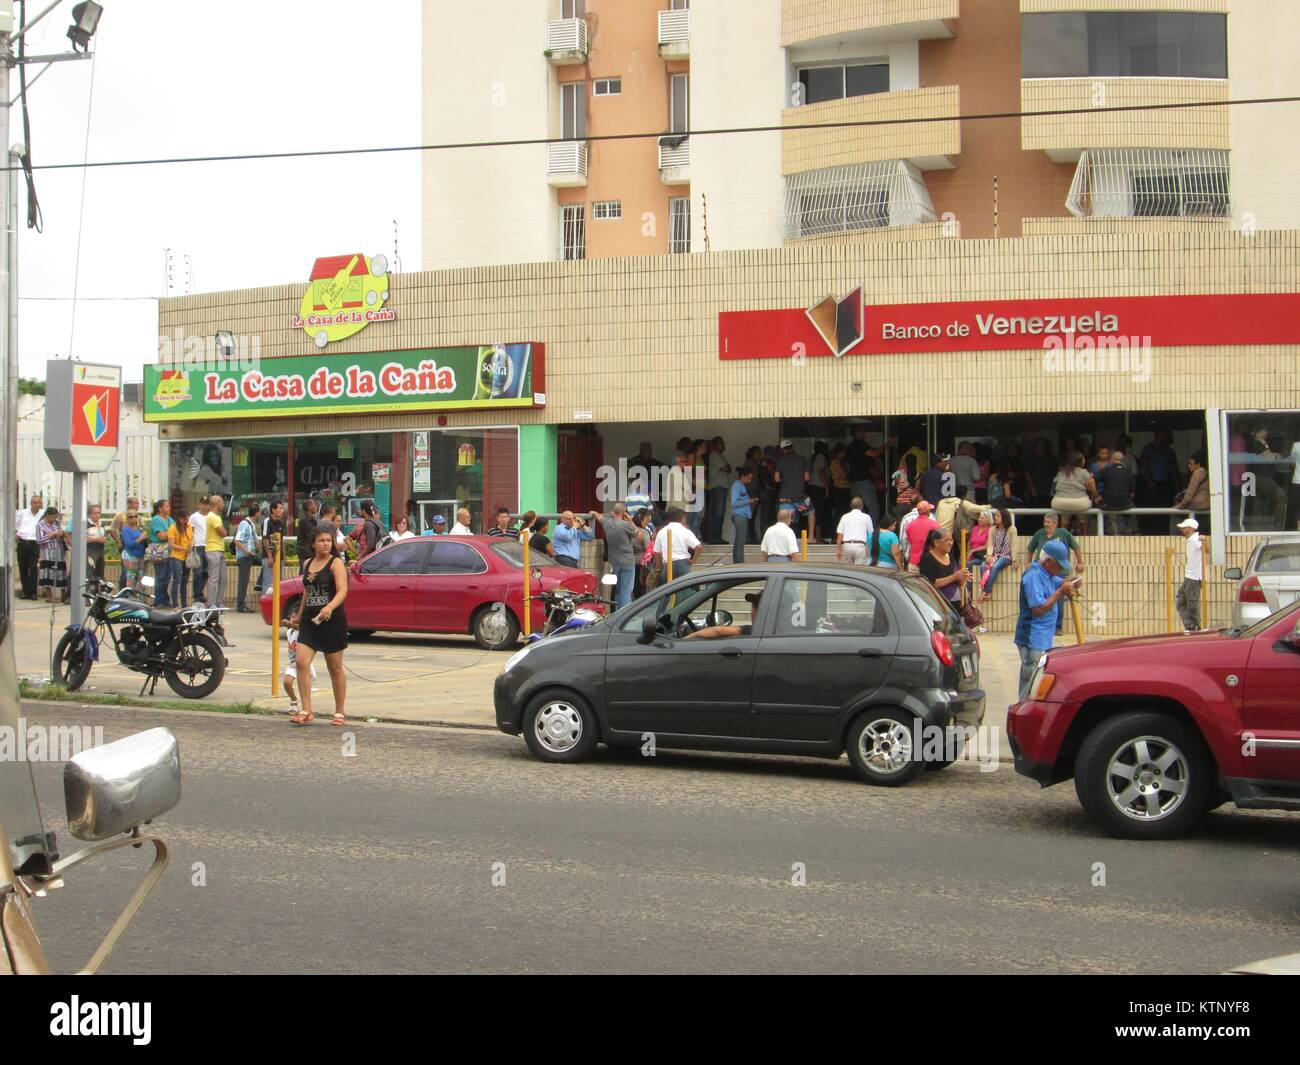 Guayana City, Venezuela. 28th Dec, 2017. Economy, Banking, Bussines, Lifestyle. News: Long lines of people are observed - Stock Image